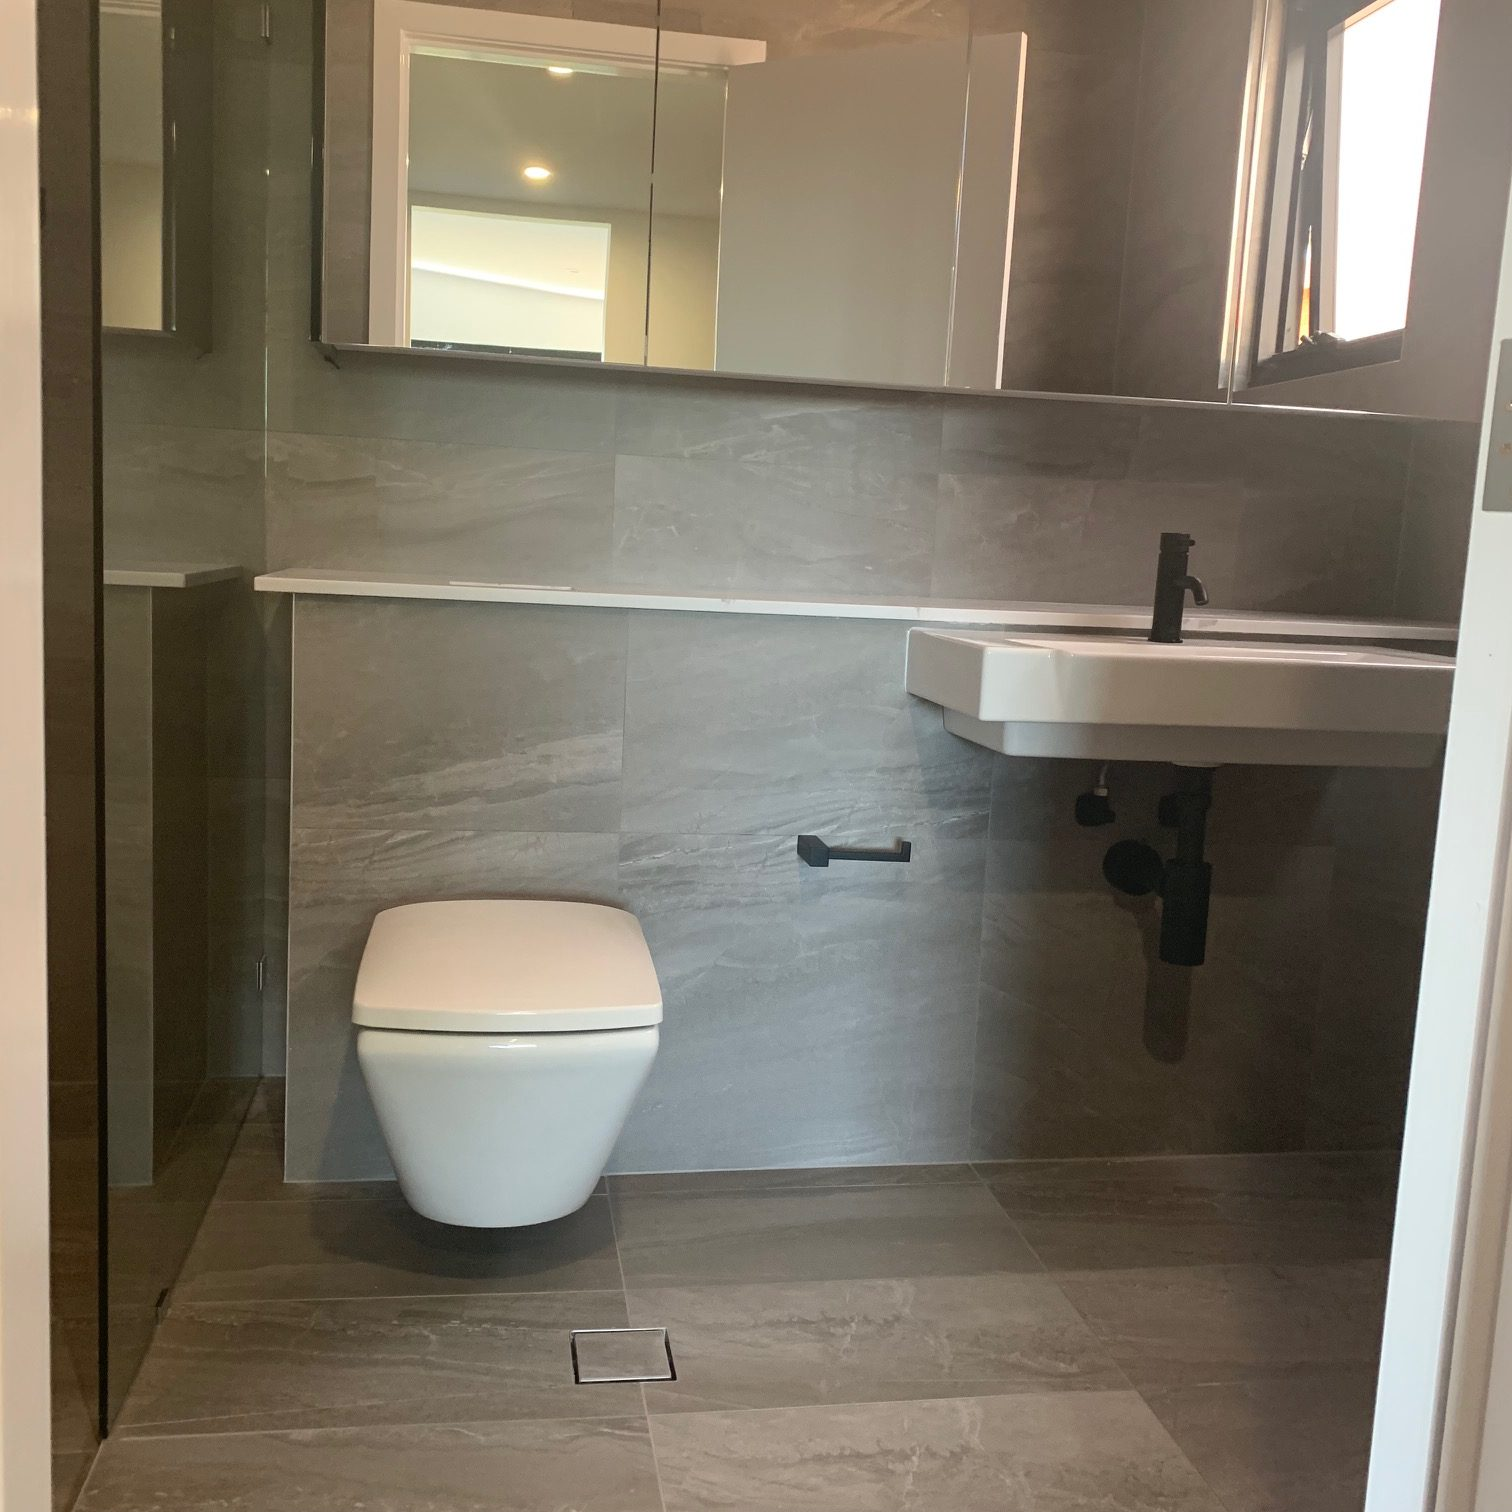 Bathroom sink and toilet area with Warmtech Inscreed heating system